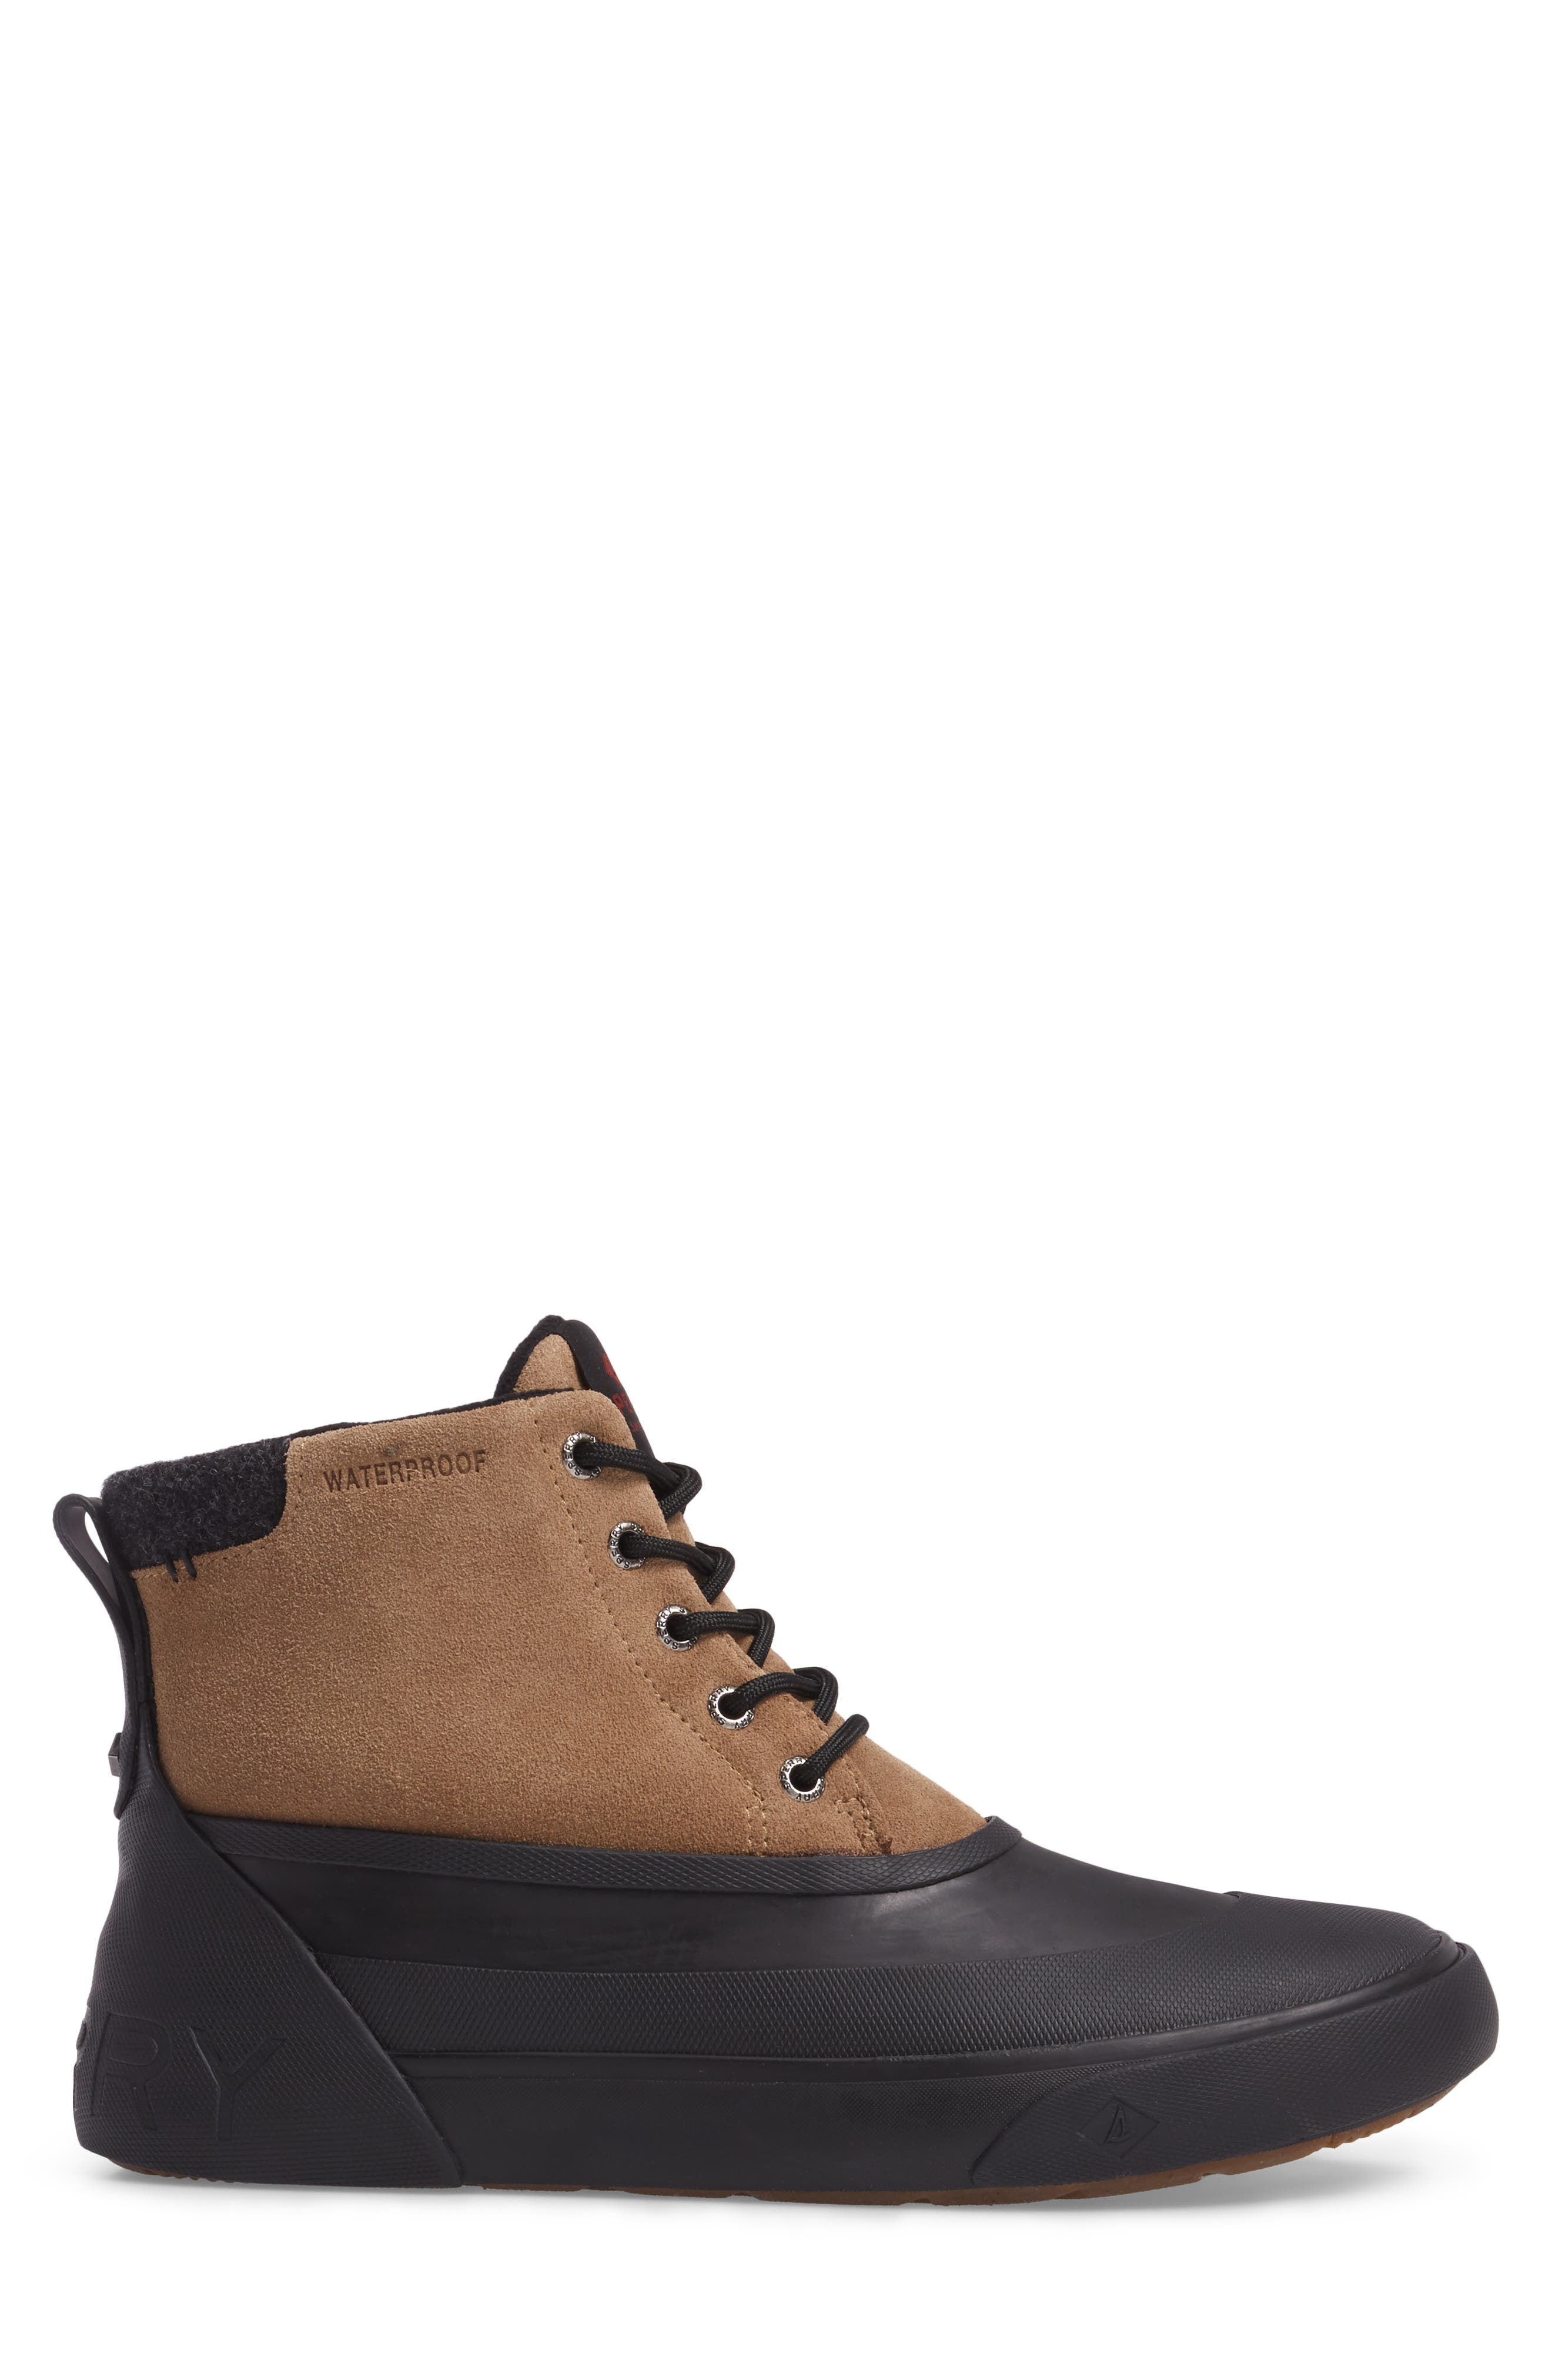 Cutwater Boot,                             Alternate thumbnail 3, color,                             Noce/ Black